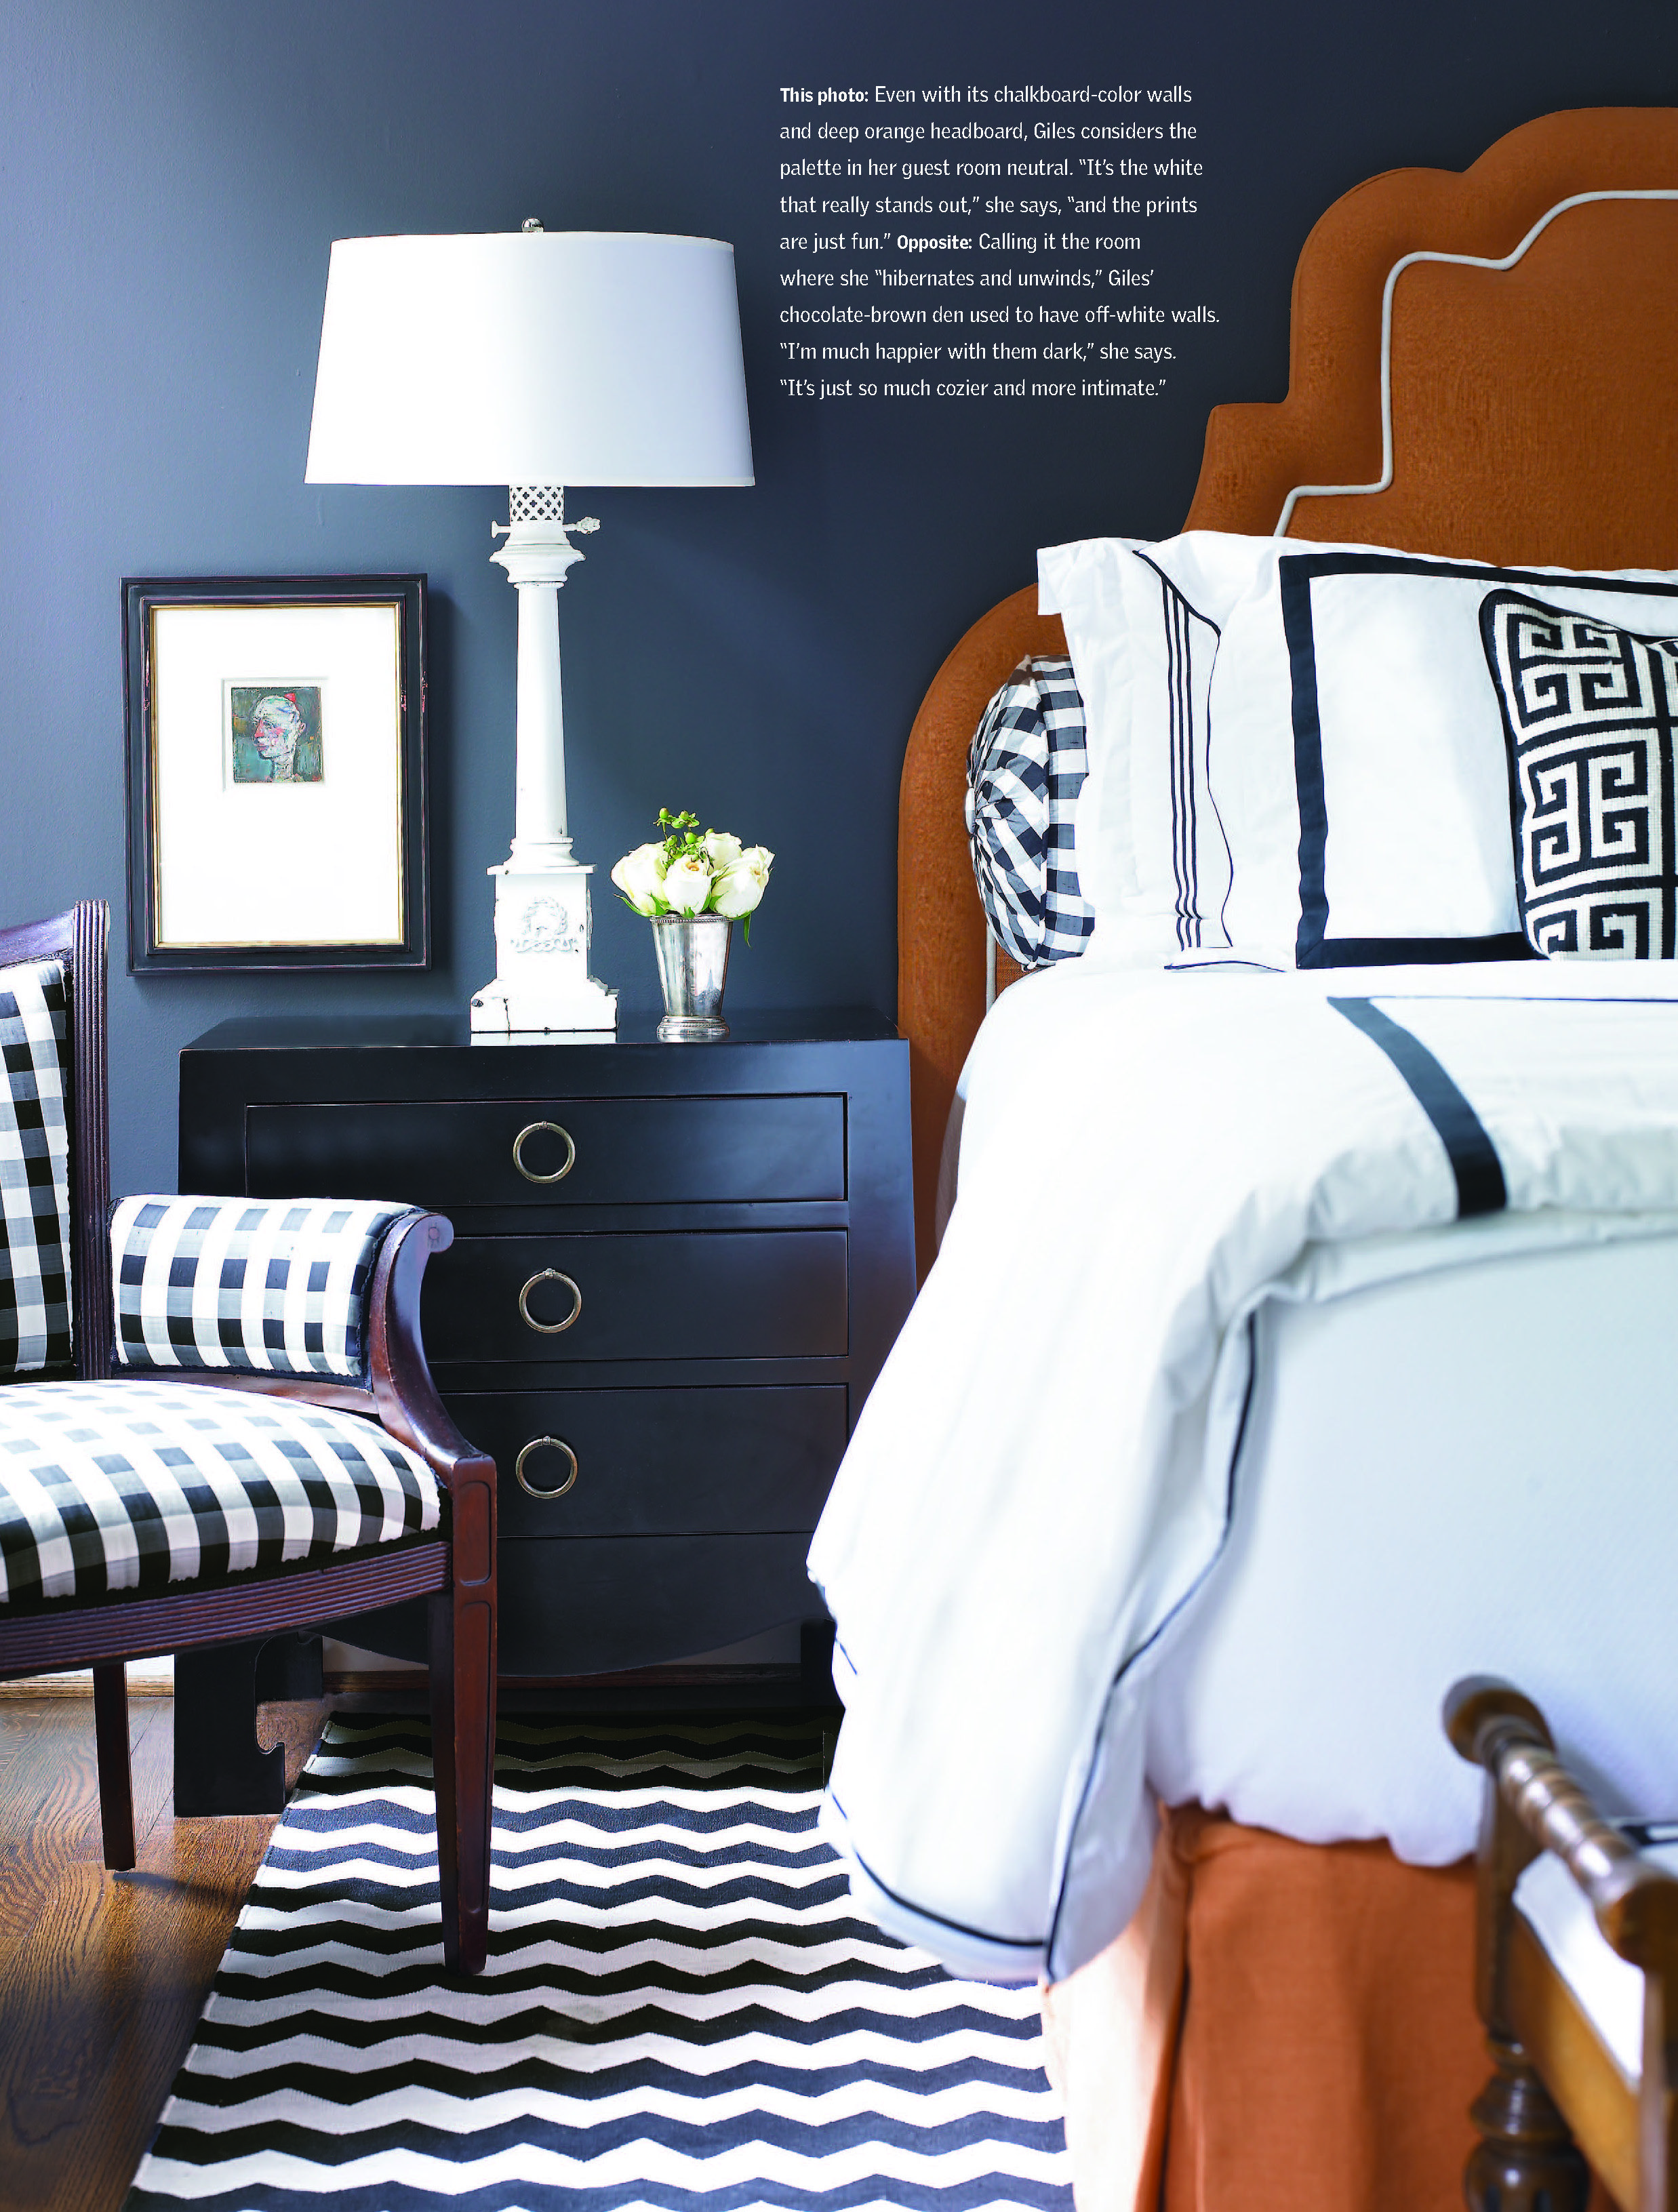 Dark navy paint on the walls works so well with bright white bed